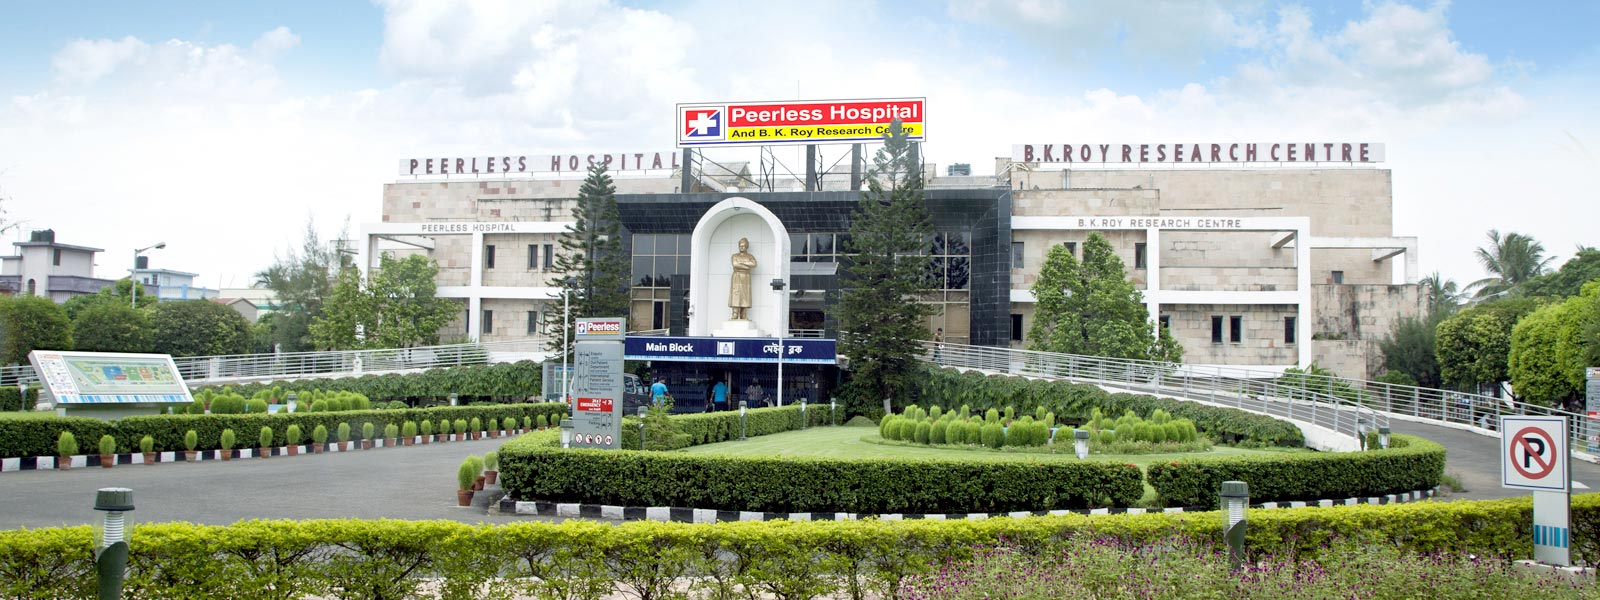 Peerless Hospital And B K Roy Research Centre Image